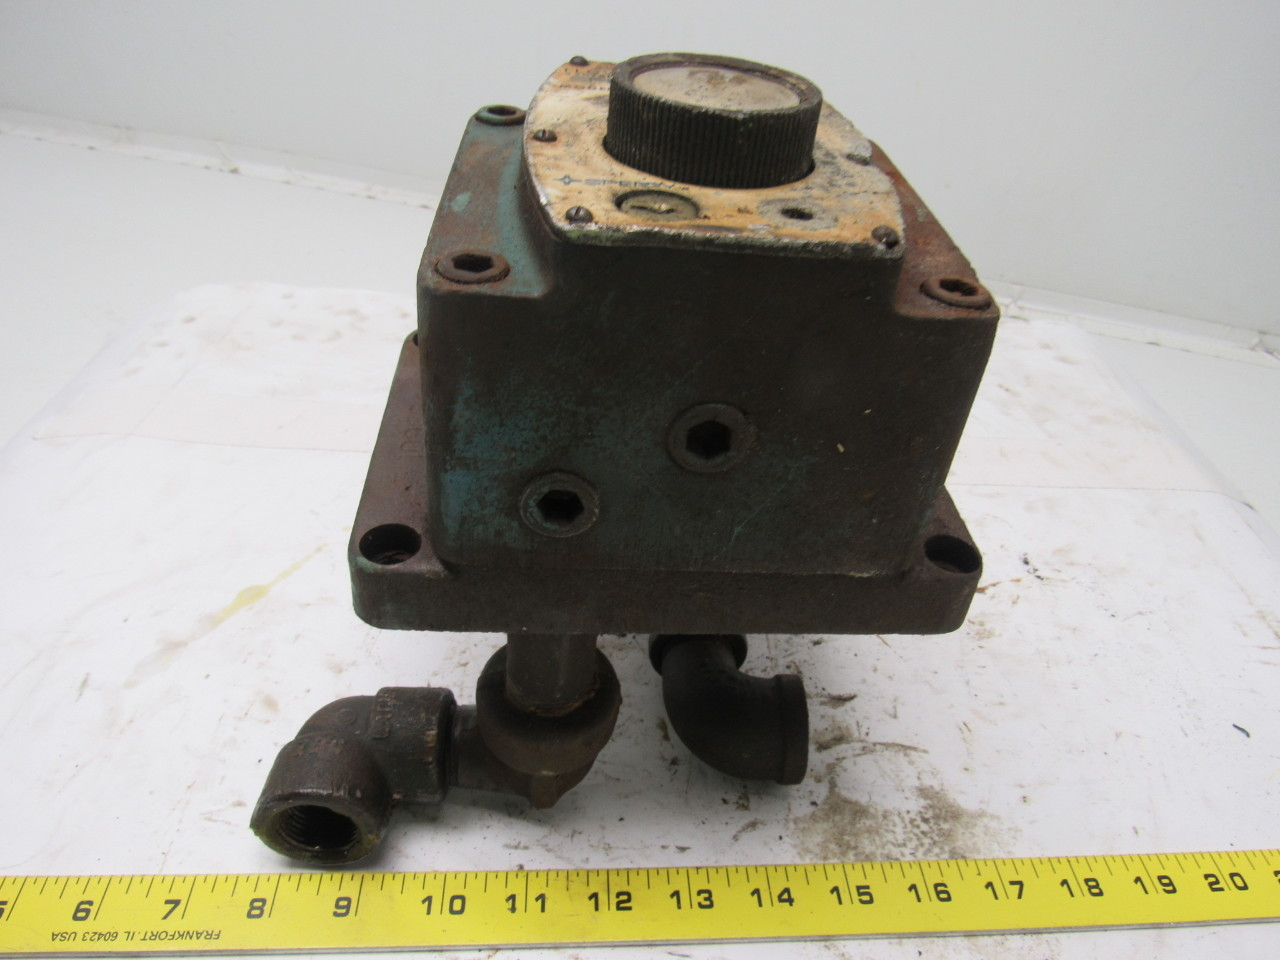 Sperry Vickers FG 03 28 22 330786 Hydraulic Flow Control Valve No Key Used